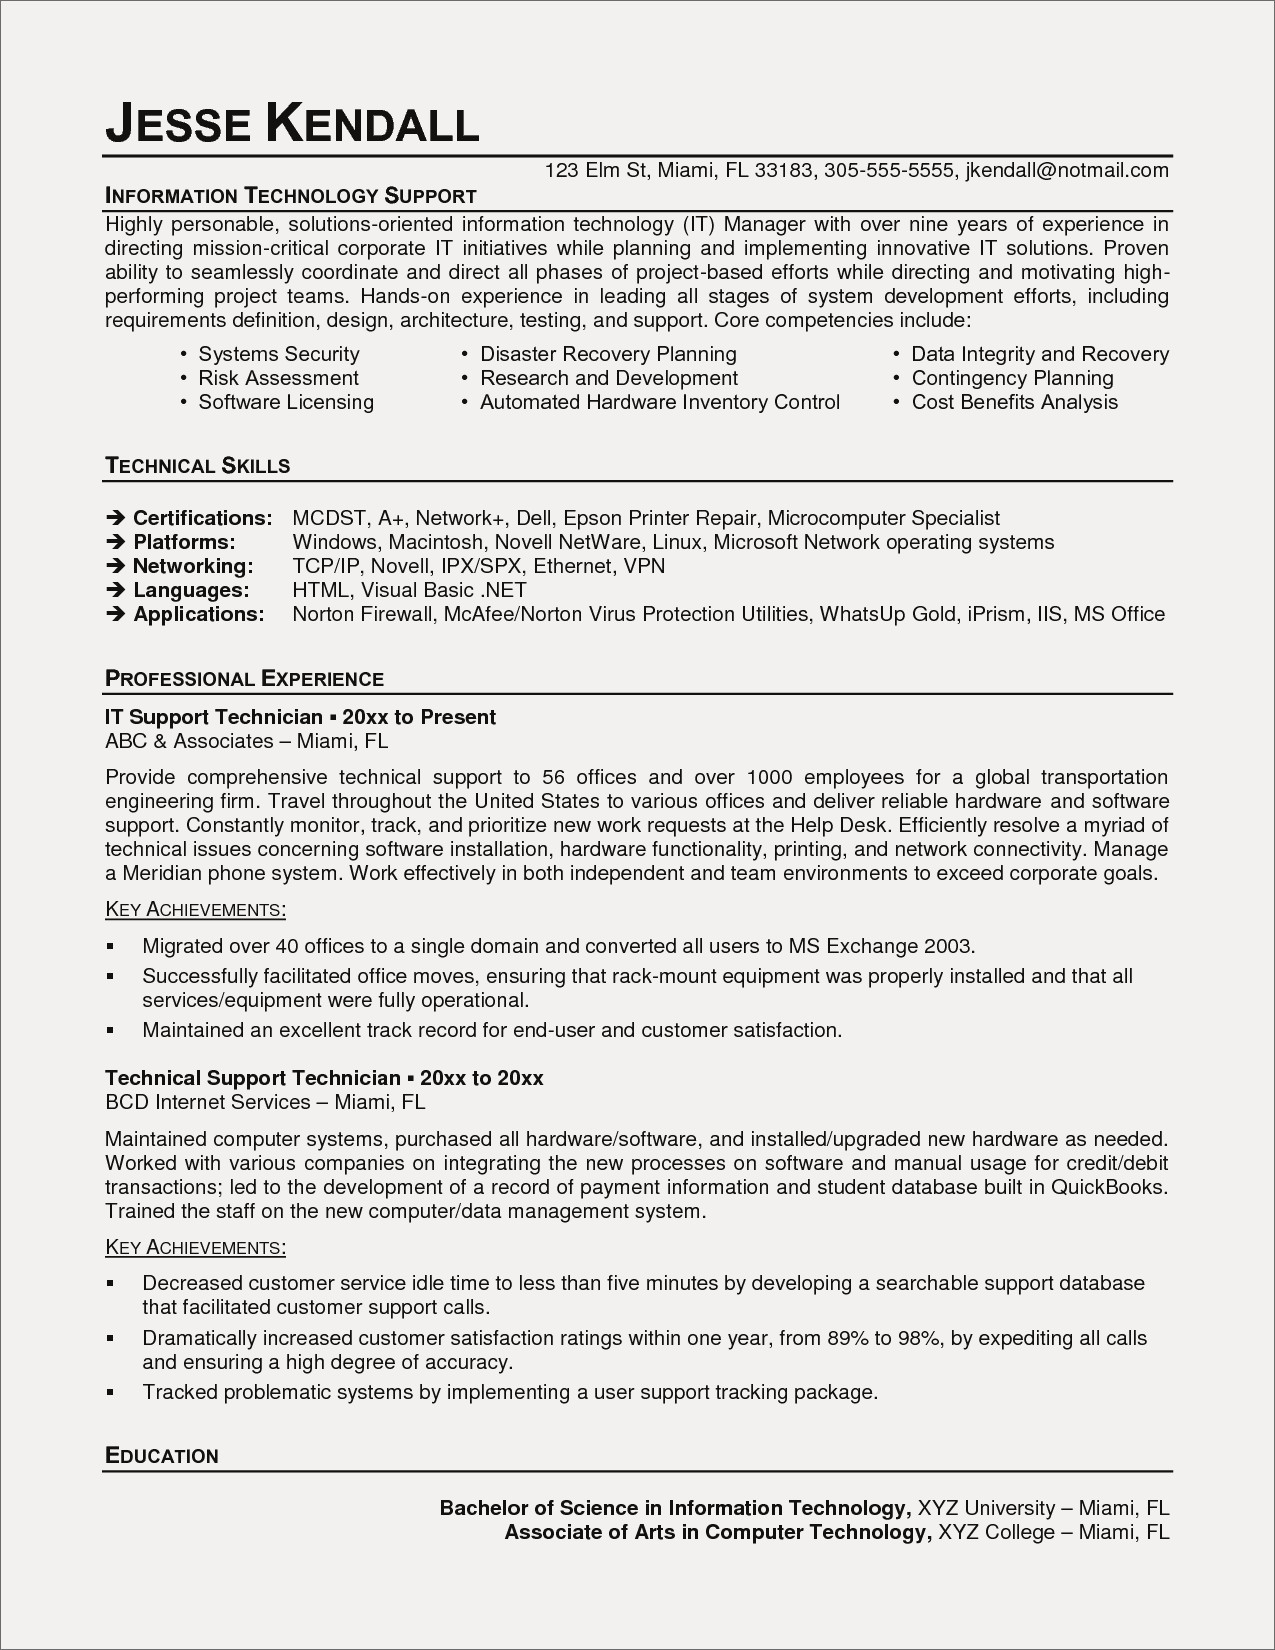 auto mechanic skills resume example-Technician Resume Examples New Auto Mechanic Resume American Resume Sample New Student Resume 0d 10-d